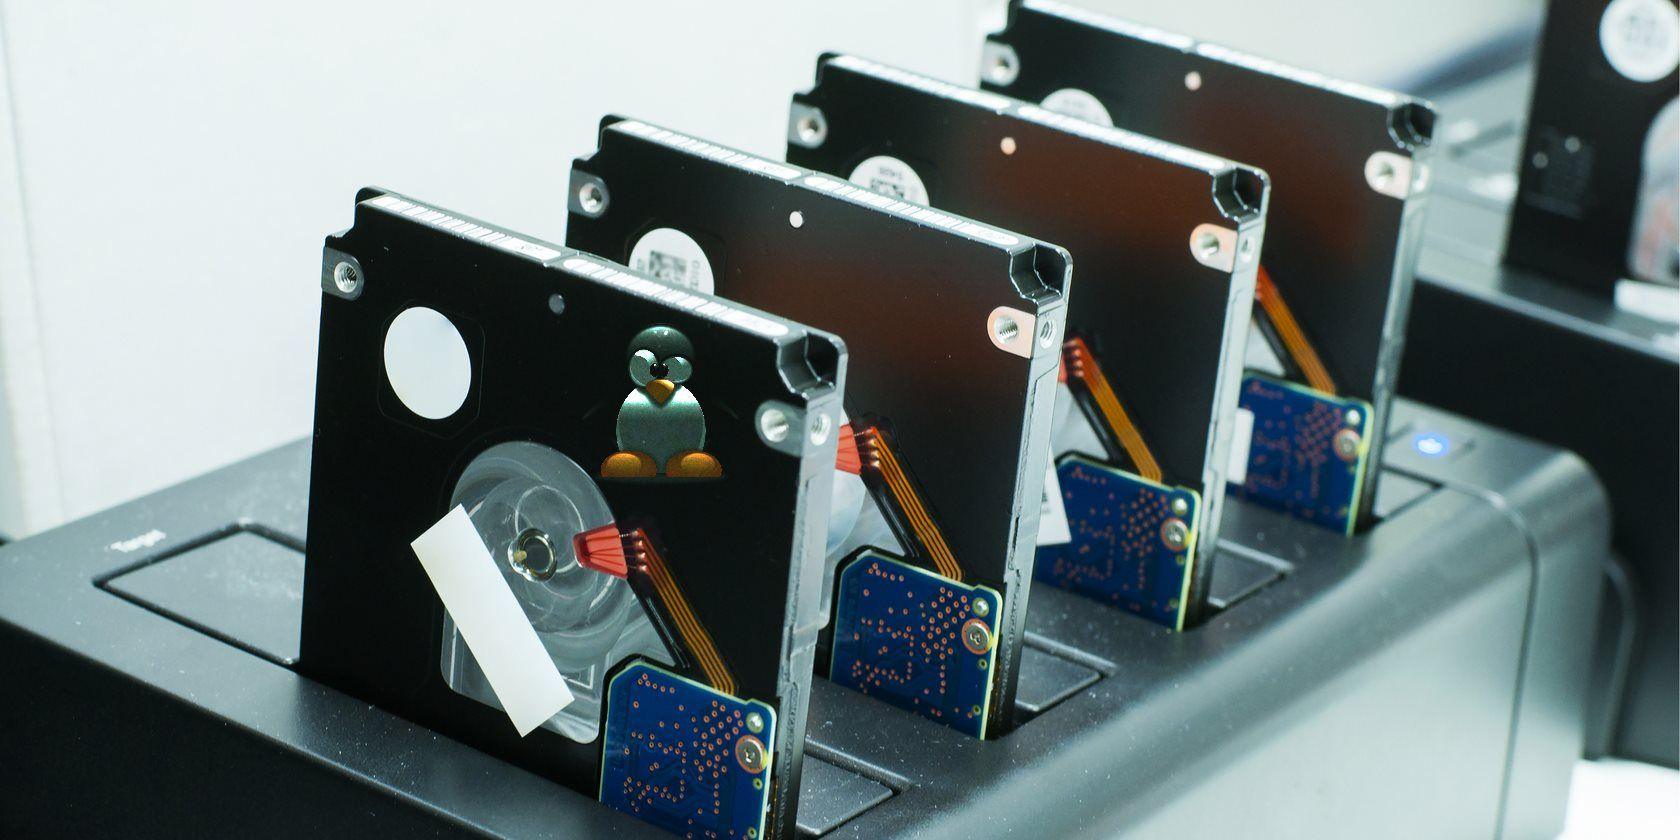 How to Clone Your Linux Hard Drive: 4 Methods